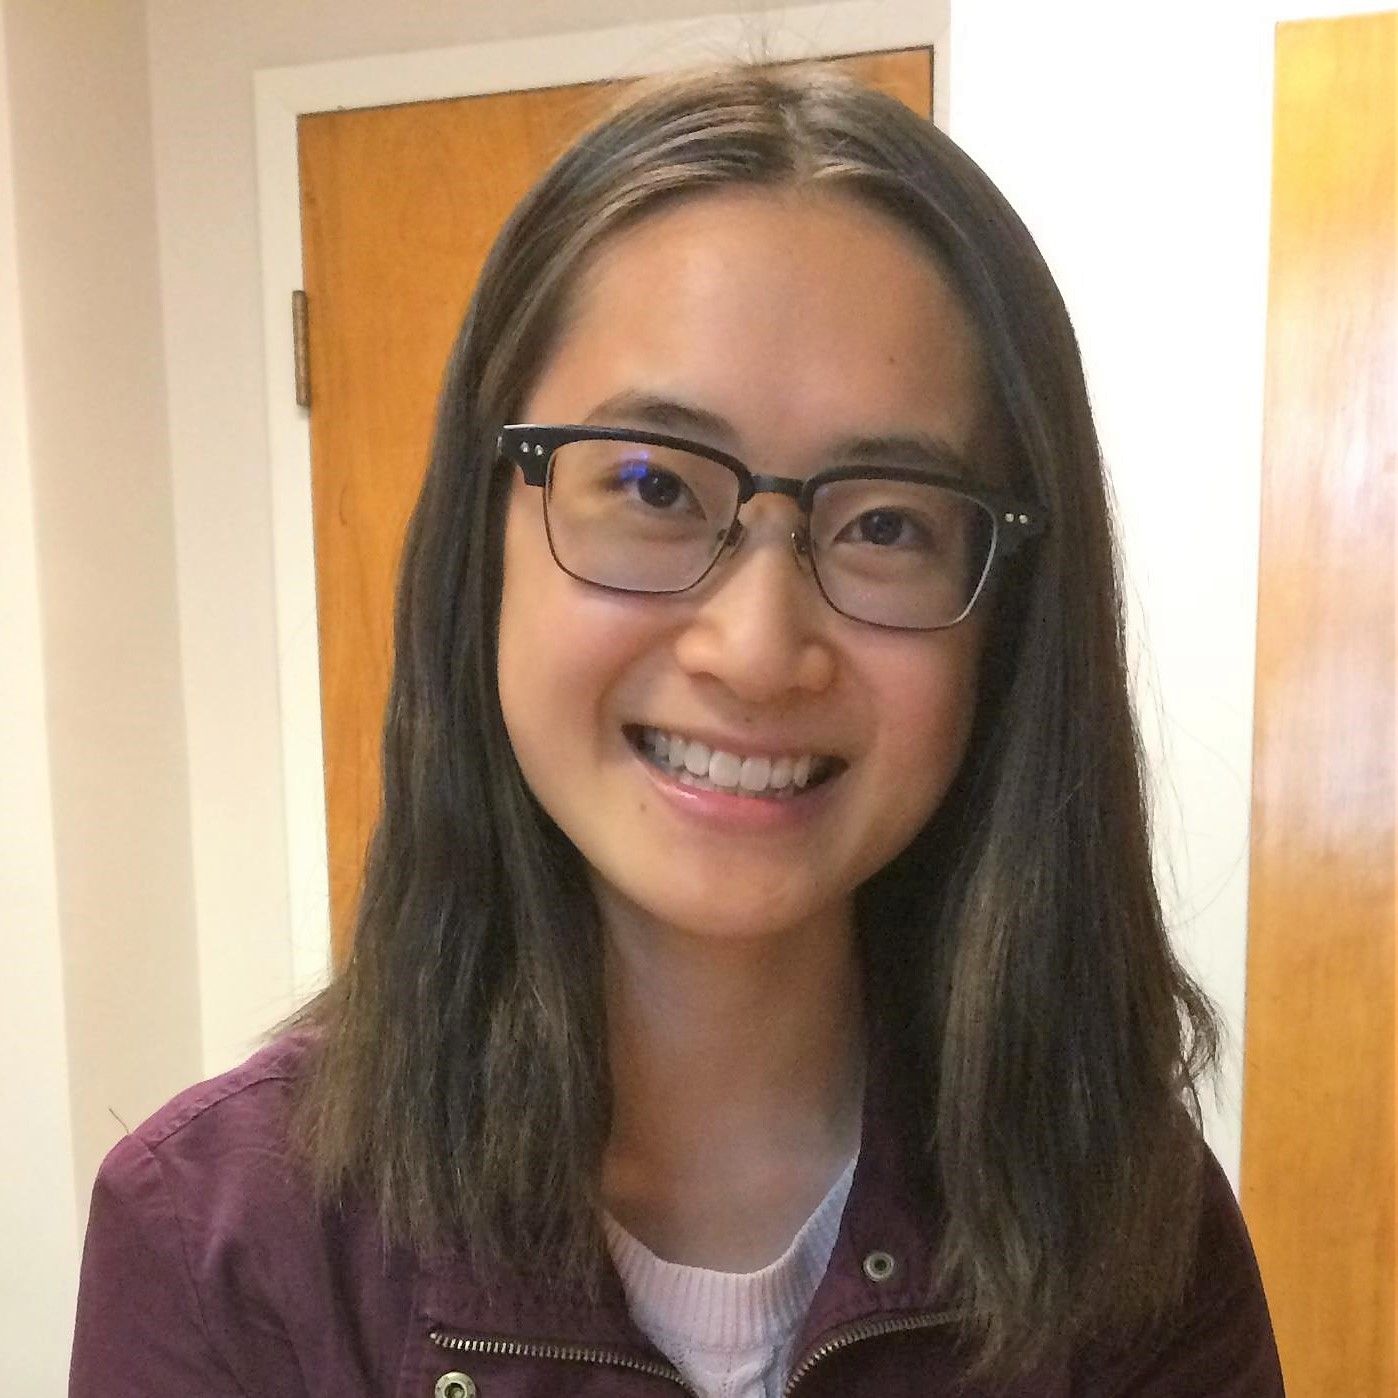 Hannah Chan is an undergraduate Human Nutritional Sciences student at the University of Manitoba and food enthusiast. Her keen interest in how multi-level food systems and food environments affect the nutritional health of individuals and populations led to her role as UManitoba's Meal Exchange Chapter Coordinator in 2016. As a member of the Student Standards Committee (Round 3) and as the Good Food Challenge Calculator and Campaign Lead at the University of Manitoba, Hannah is passionate about connecting stakeholders in the university community, and leveraging the collective energy and creativity of students to build more sustainable, equitable, and healthy campus and community food systems.